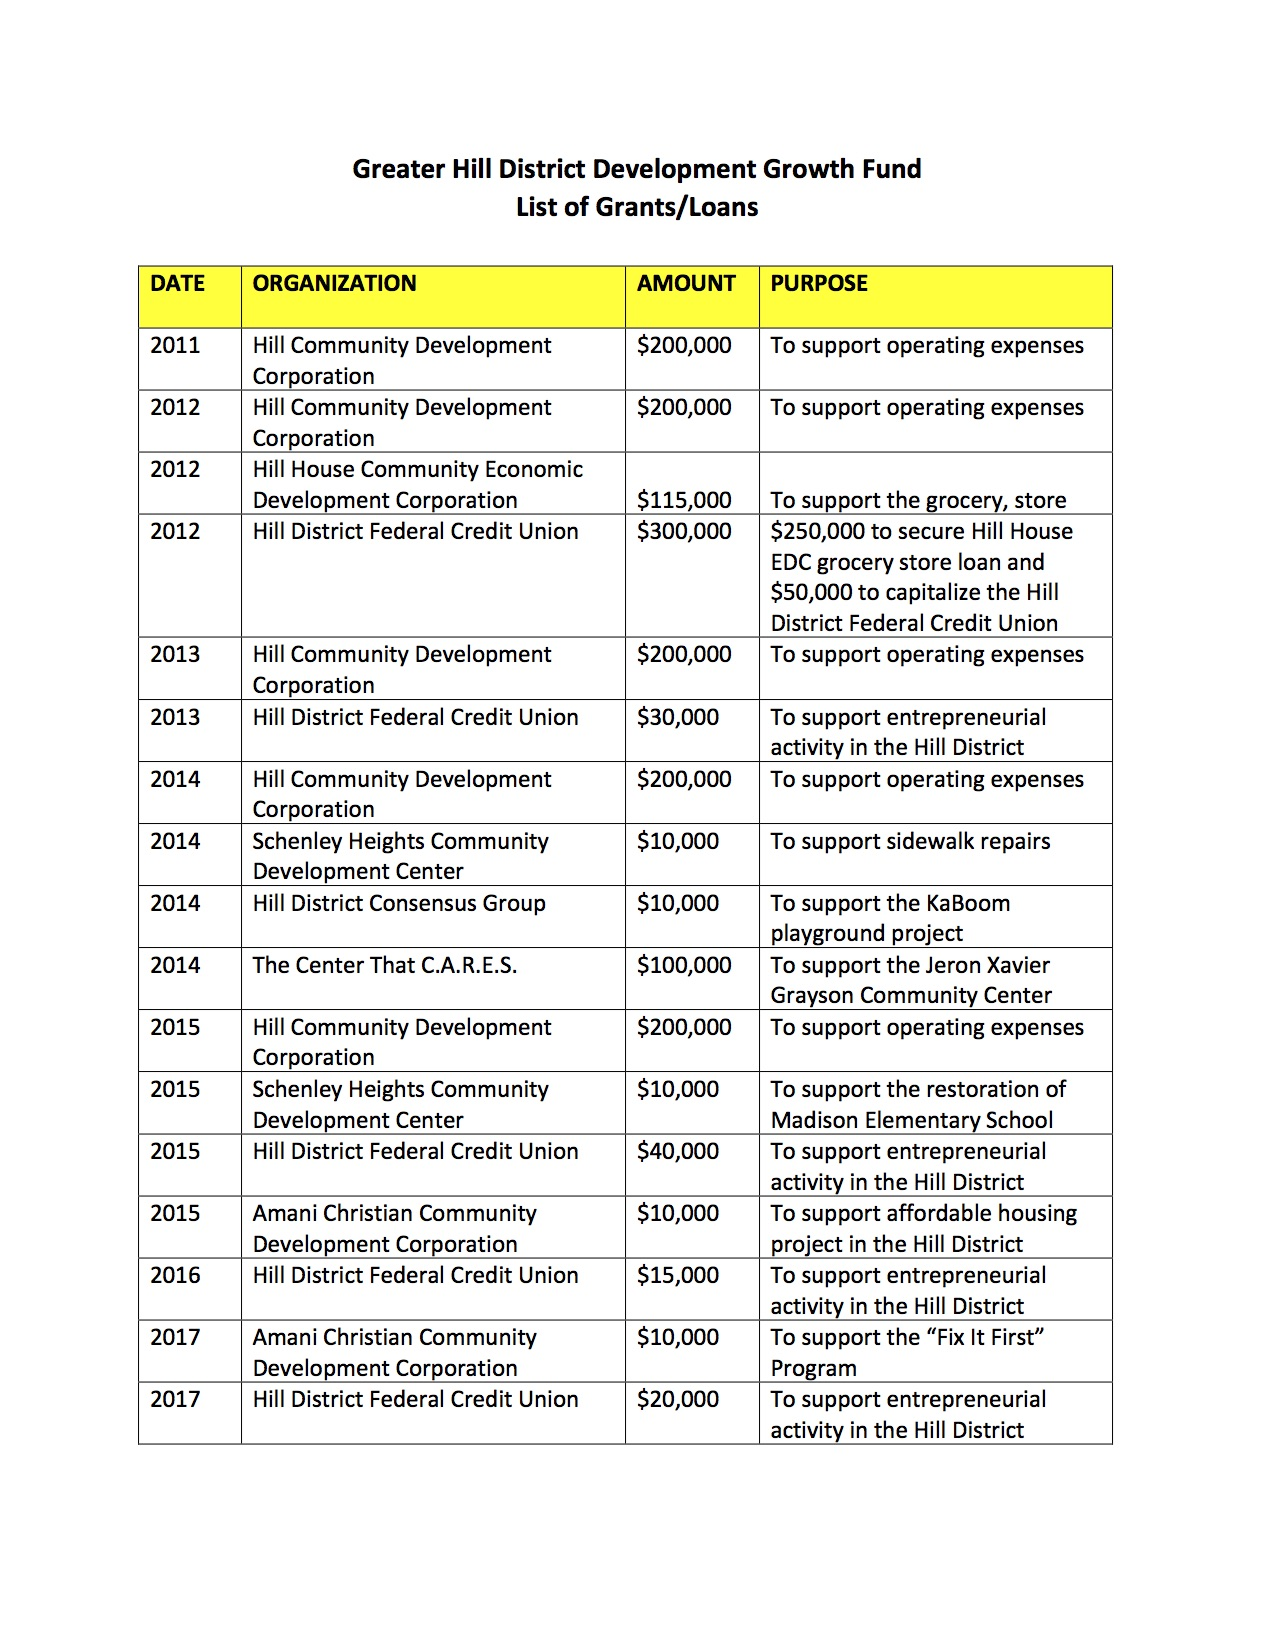 Click the image for the list of Grants/Loans